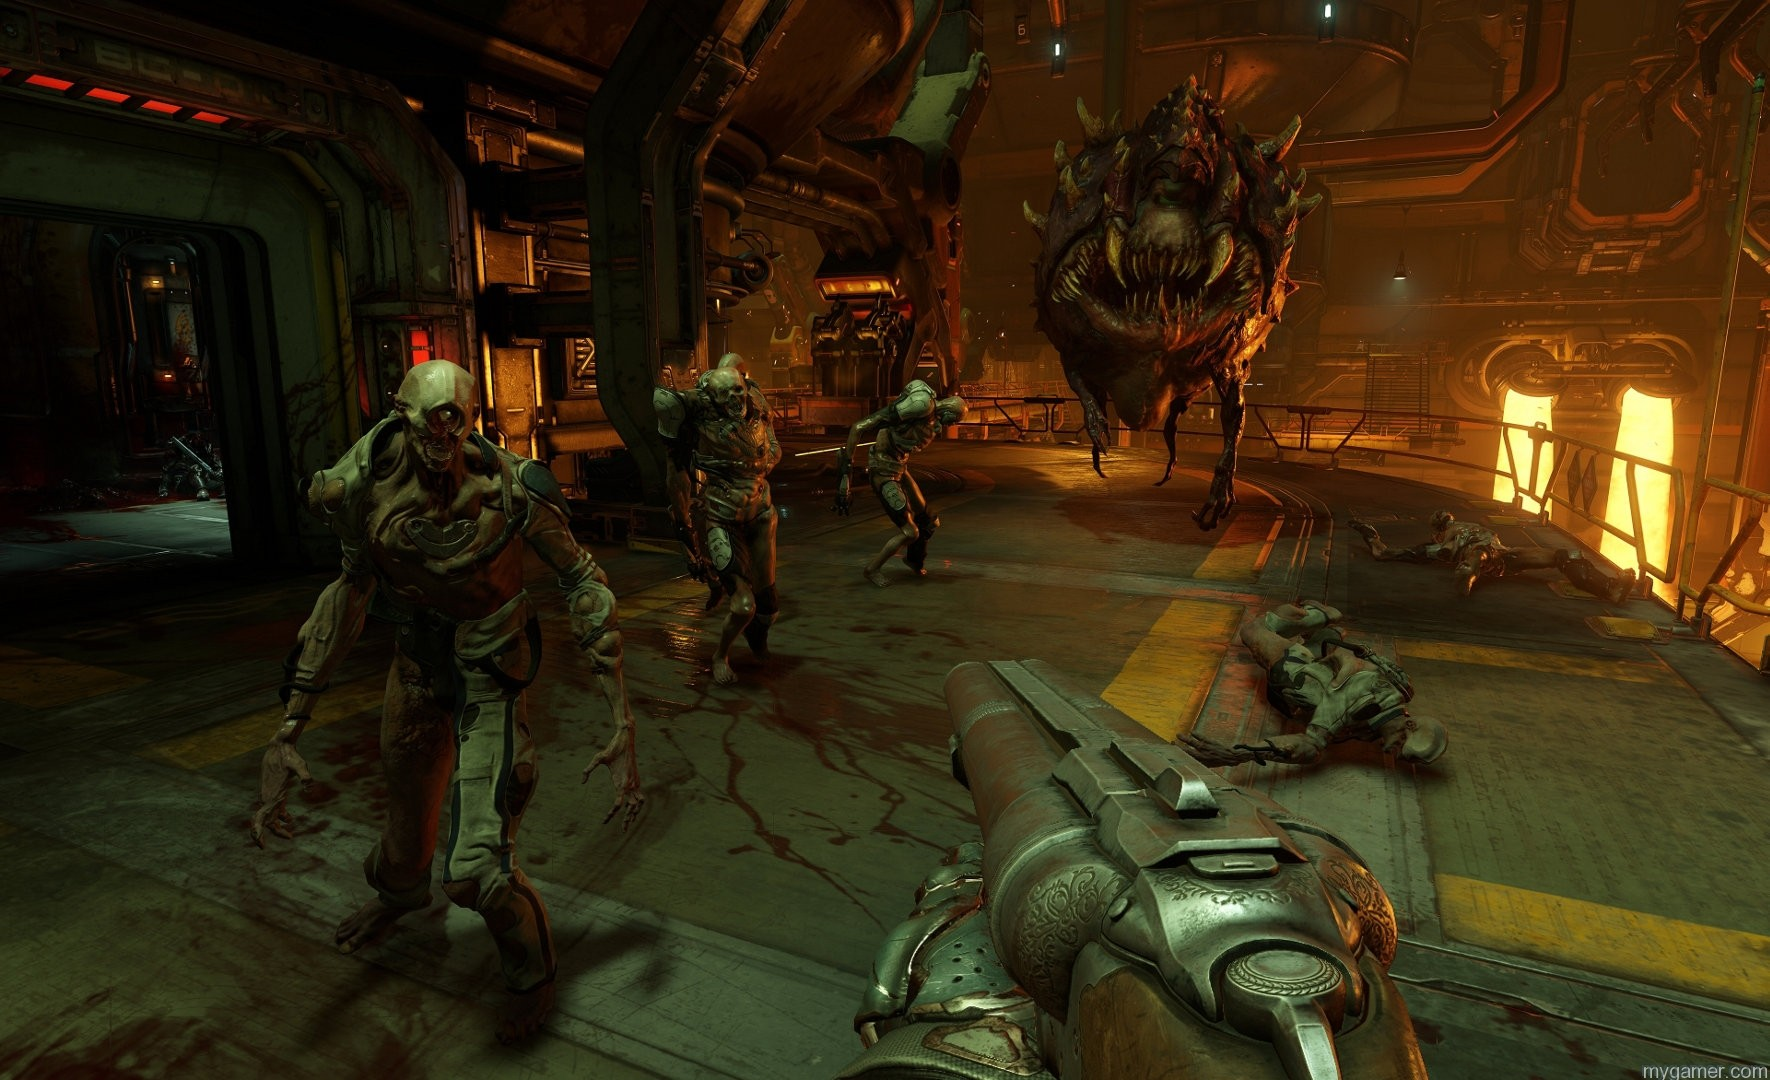 doom-screenshot-02-ps4-us-11jun15 Check Out the new Doom Multiplayer Trailer Check Out the new Doom Multiplayer Trailer doom screenshot 02 ps4 us 11jun15